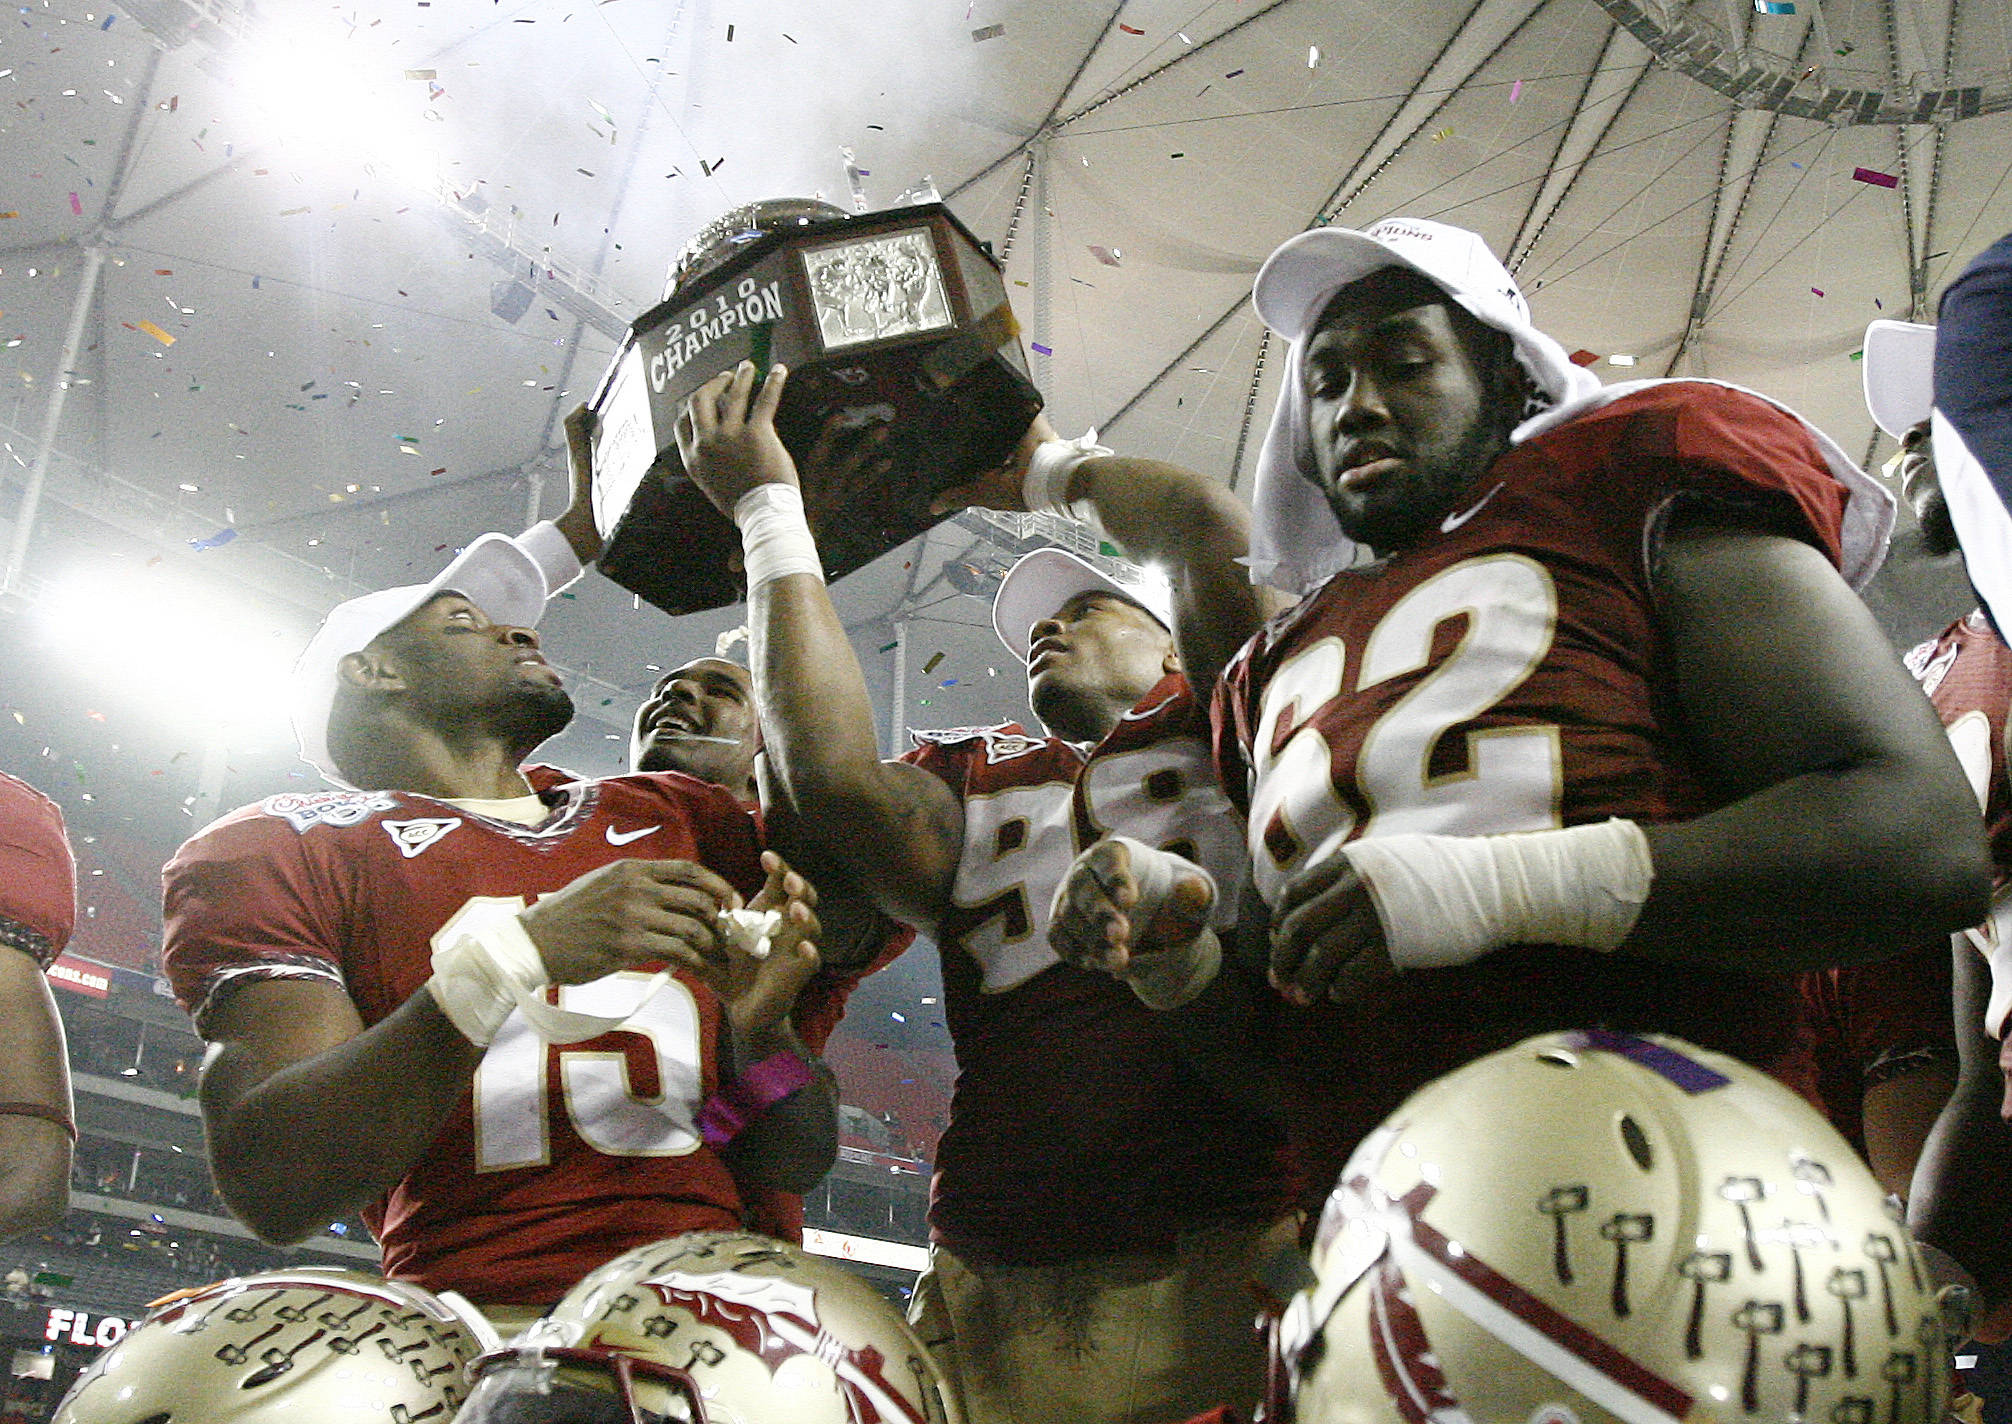 Florida State cornerback Ochuko Jenije (15), defensive end Markus White (98) and guard Rodney Hudson (62) pass the trophy after Florida State defeated South Carolina 26-17 in the Chick-fil-A Bowl on Friday, Dec. 31, 2010, in Atlanta. (AP Photo/John Amis)